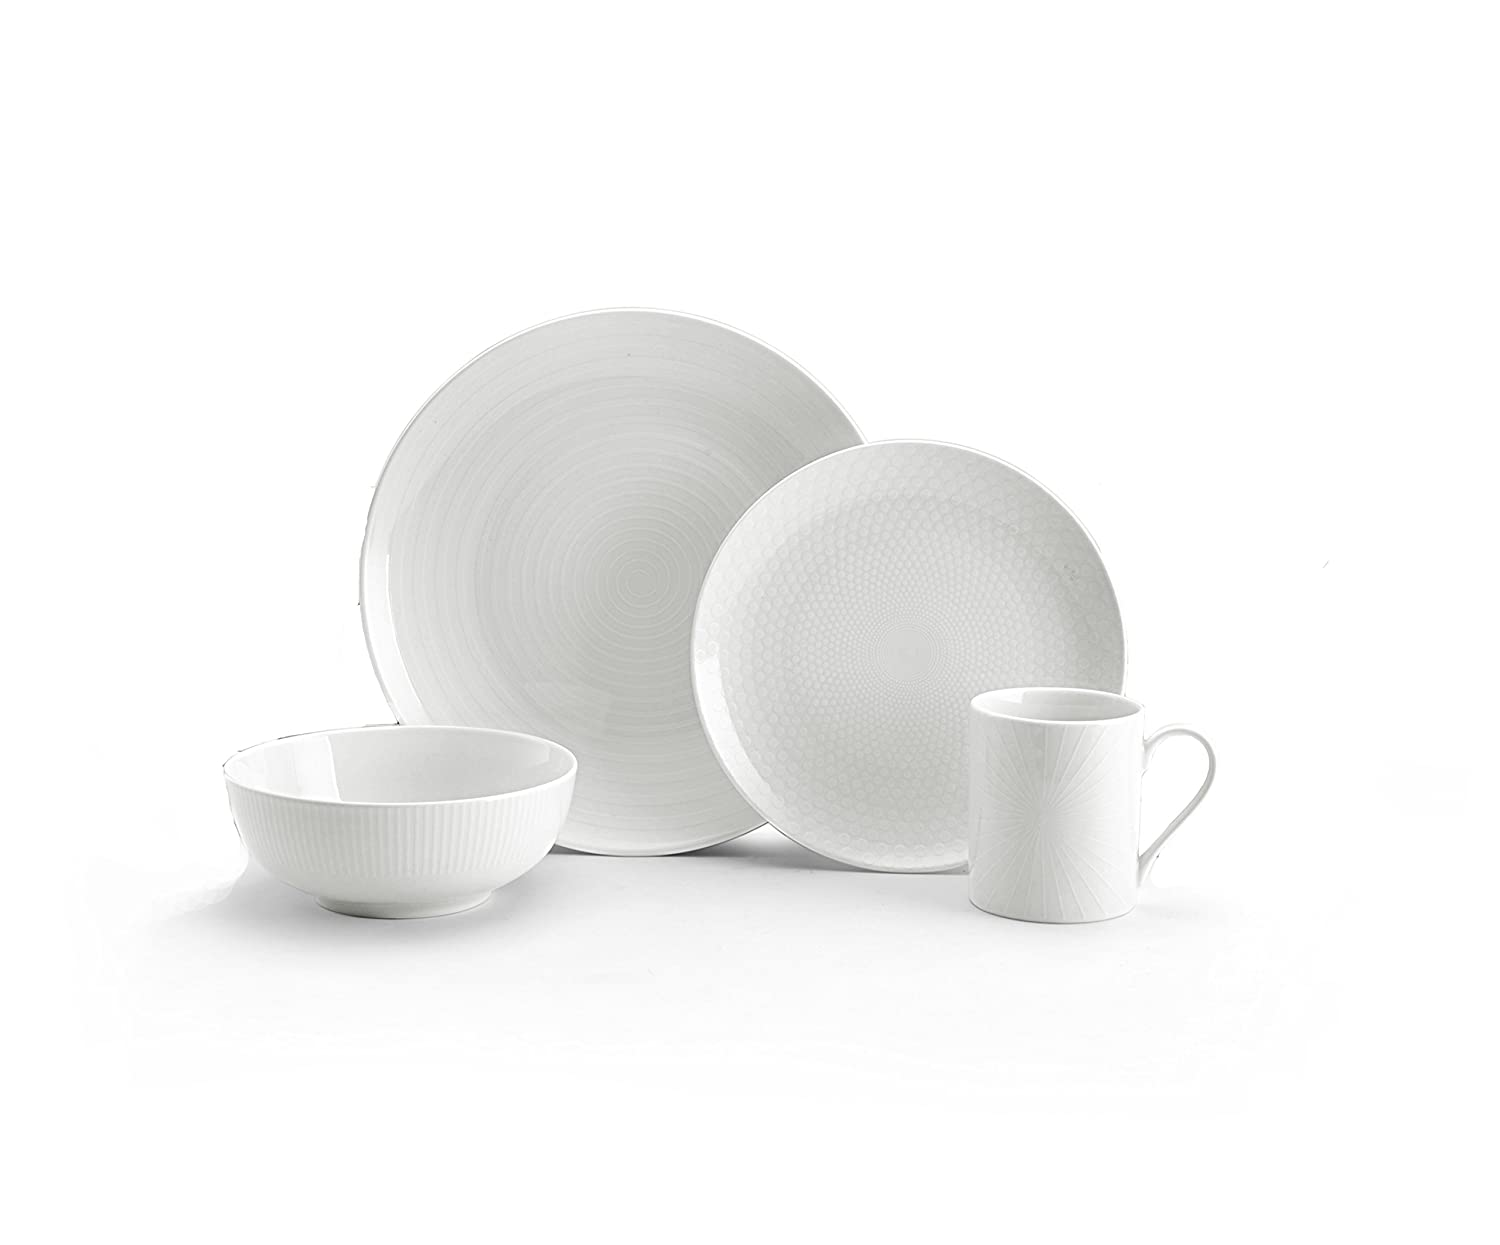 Amazon.com Mikasa Cheers White 40-Piece Cheers Dinnerware Set Service for 8 Kitchen \u0026 Dining  sc 1 st  Amazon.com & Amazon.com: Mikasa Cheers White 40-Piece Cheers Dinnerware Set ...